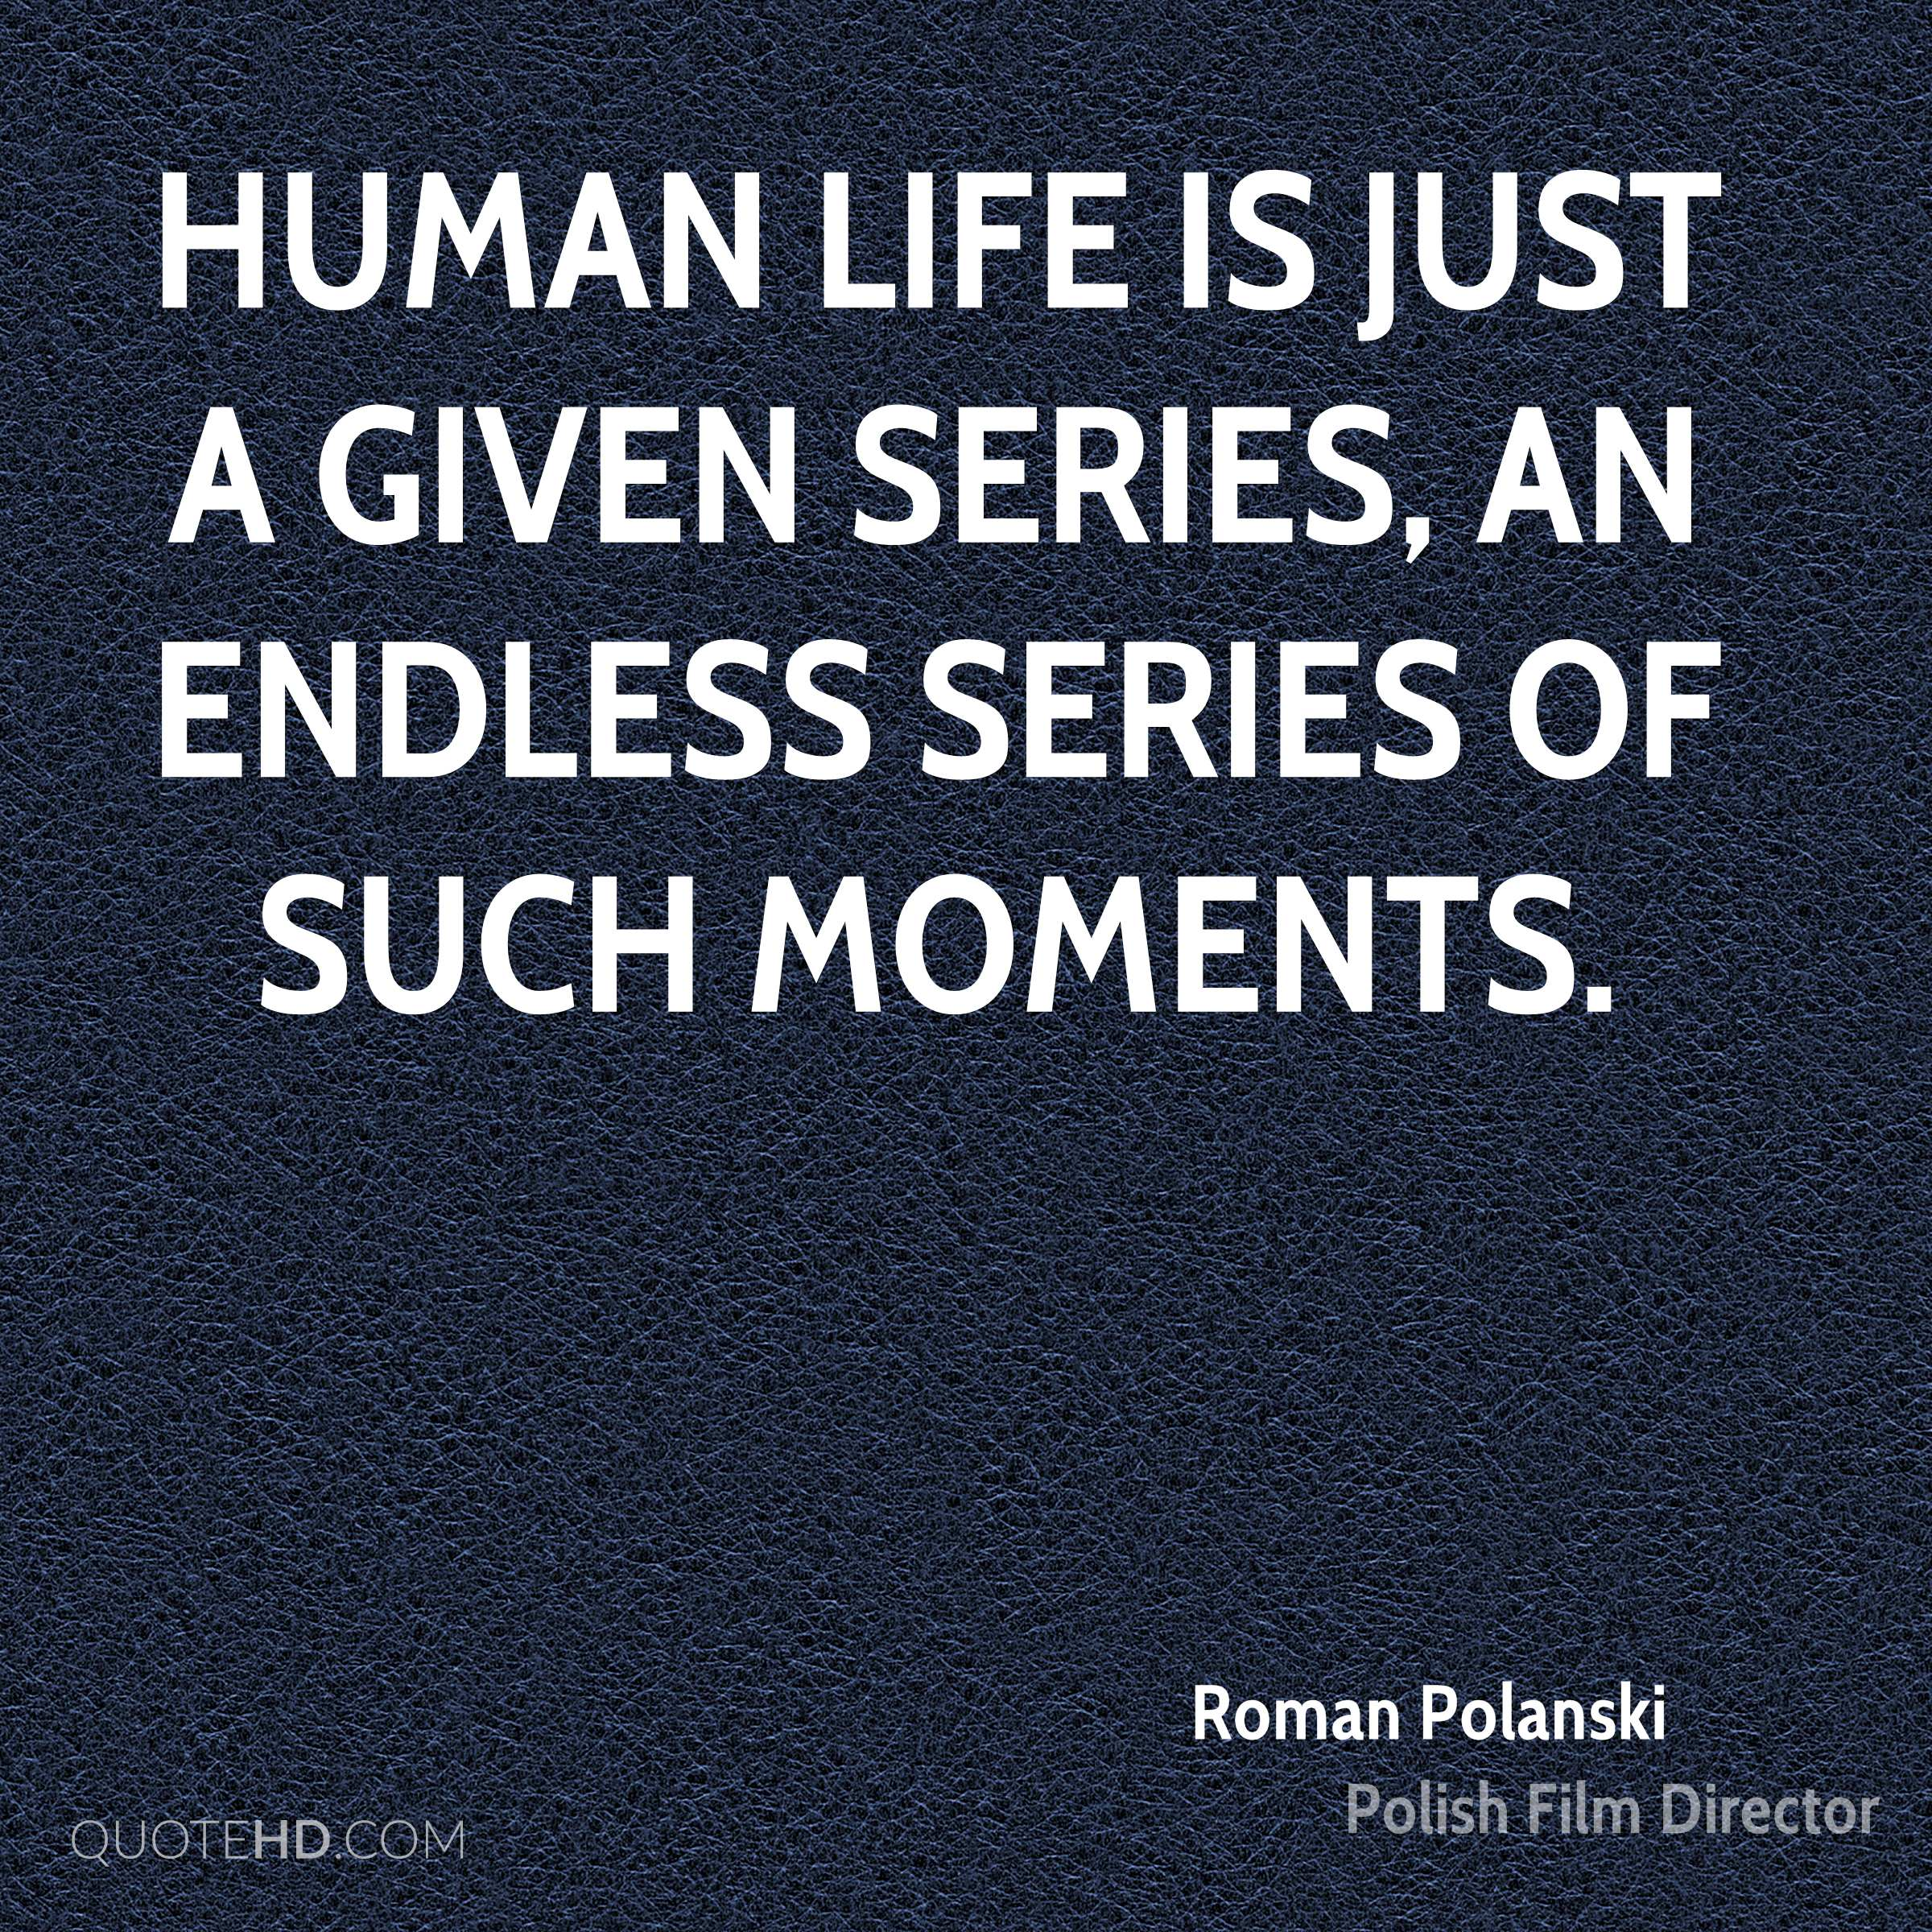 Human life is just a given series, an endless series of such moments.